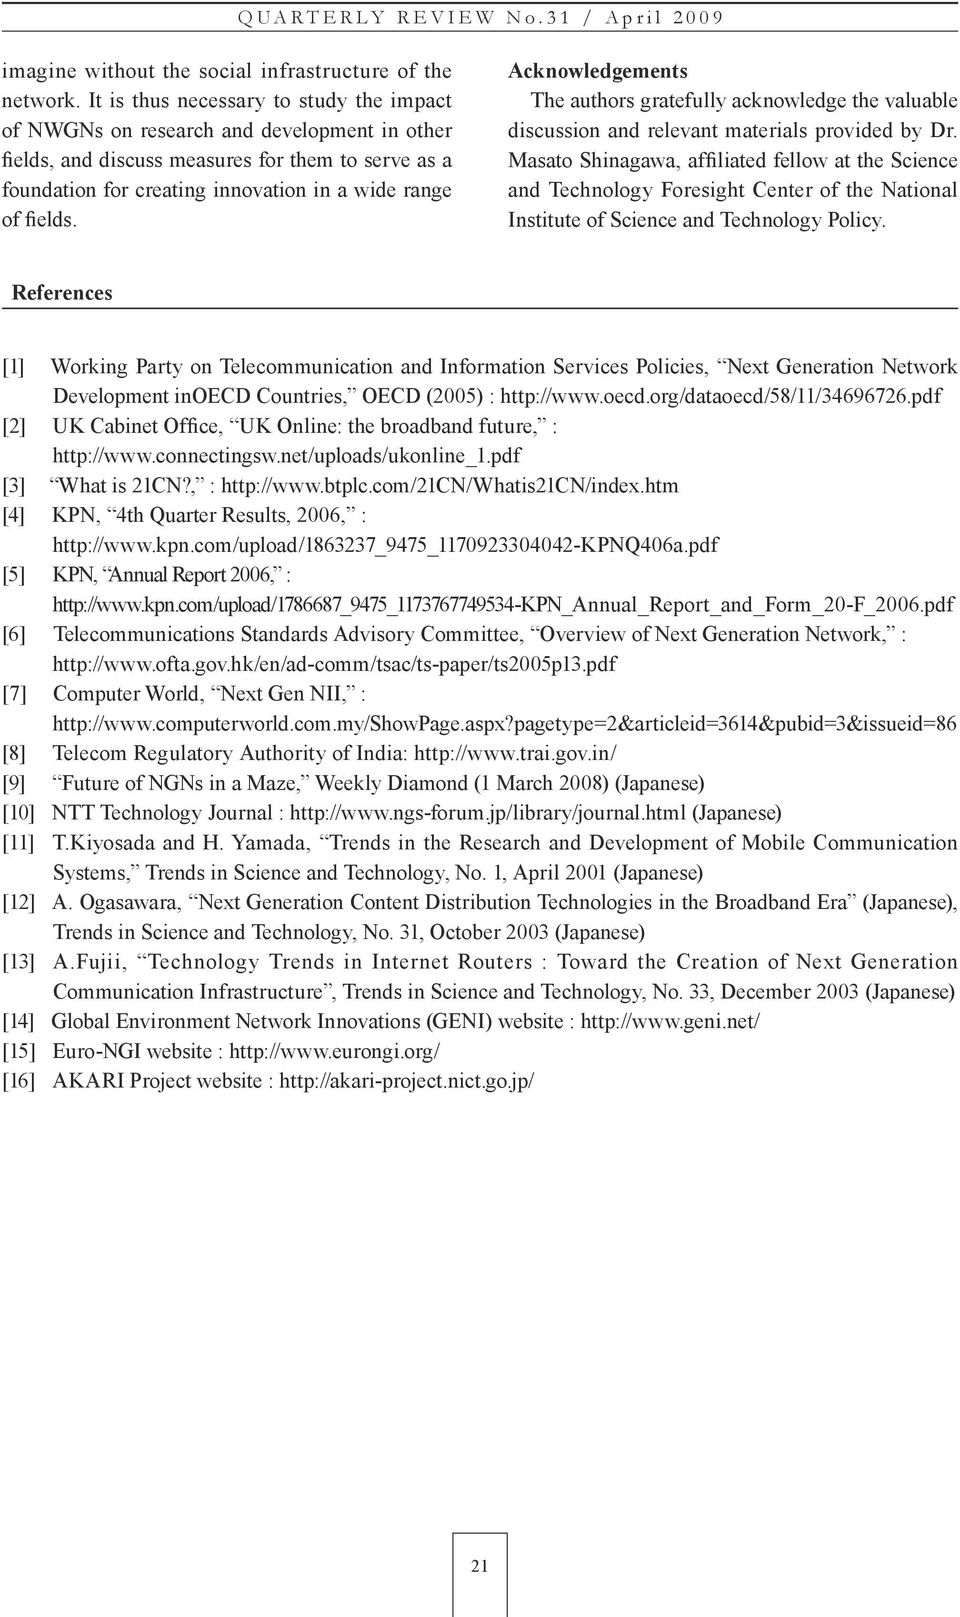 Acknowledgements The authors gratefully acknowledge the valuable discussion and relevant materials provided by Dr.